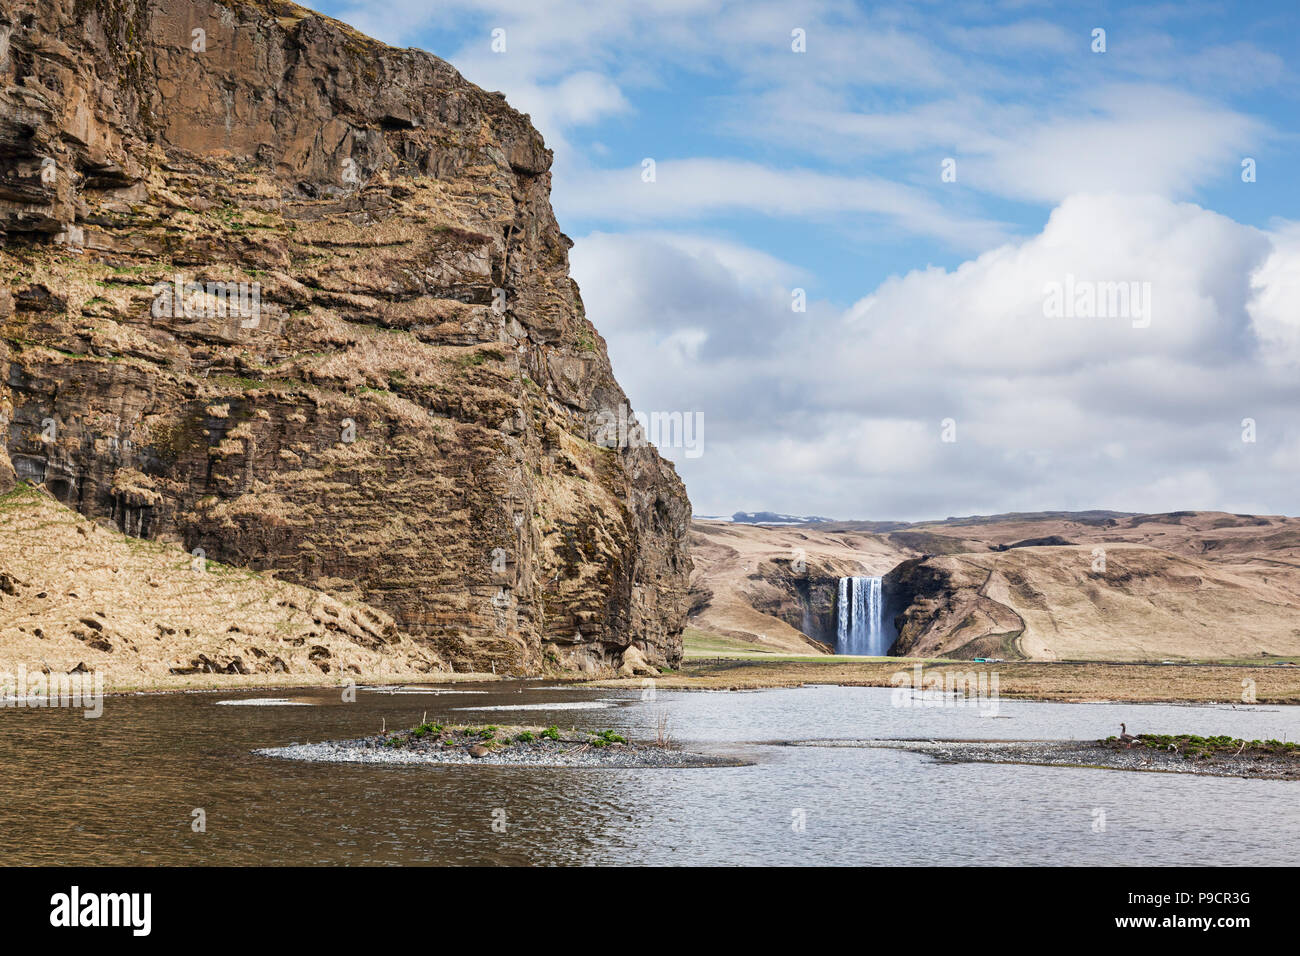 Skogafoss waterfall, Skogar, South Iceland - Stock Image